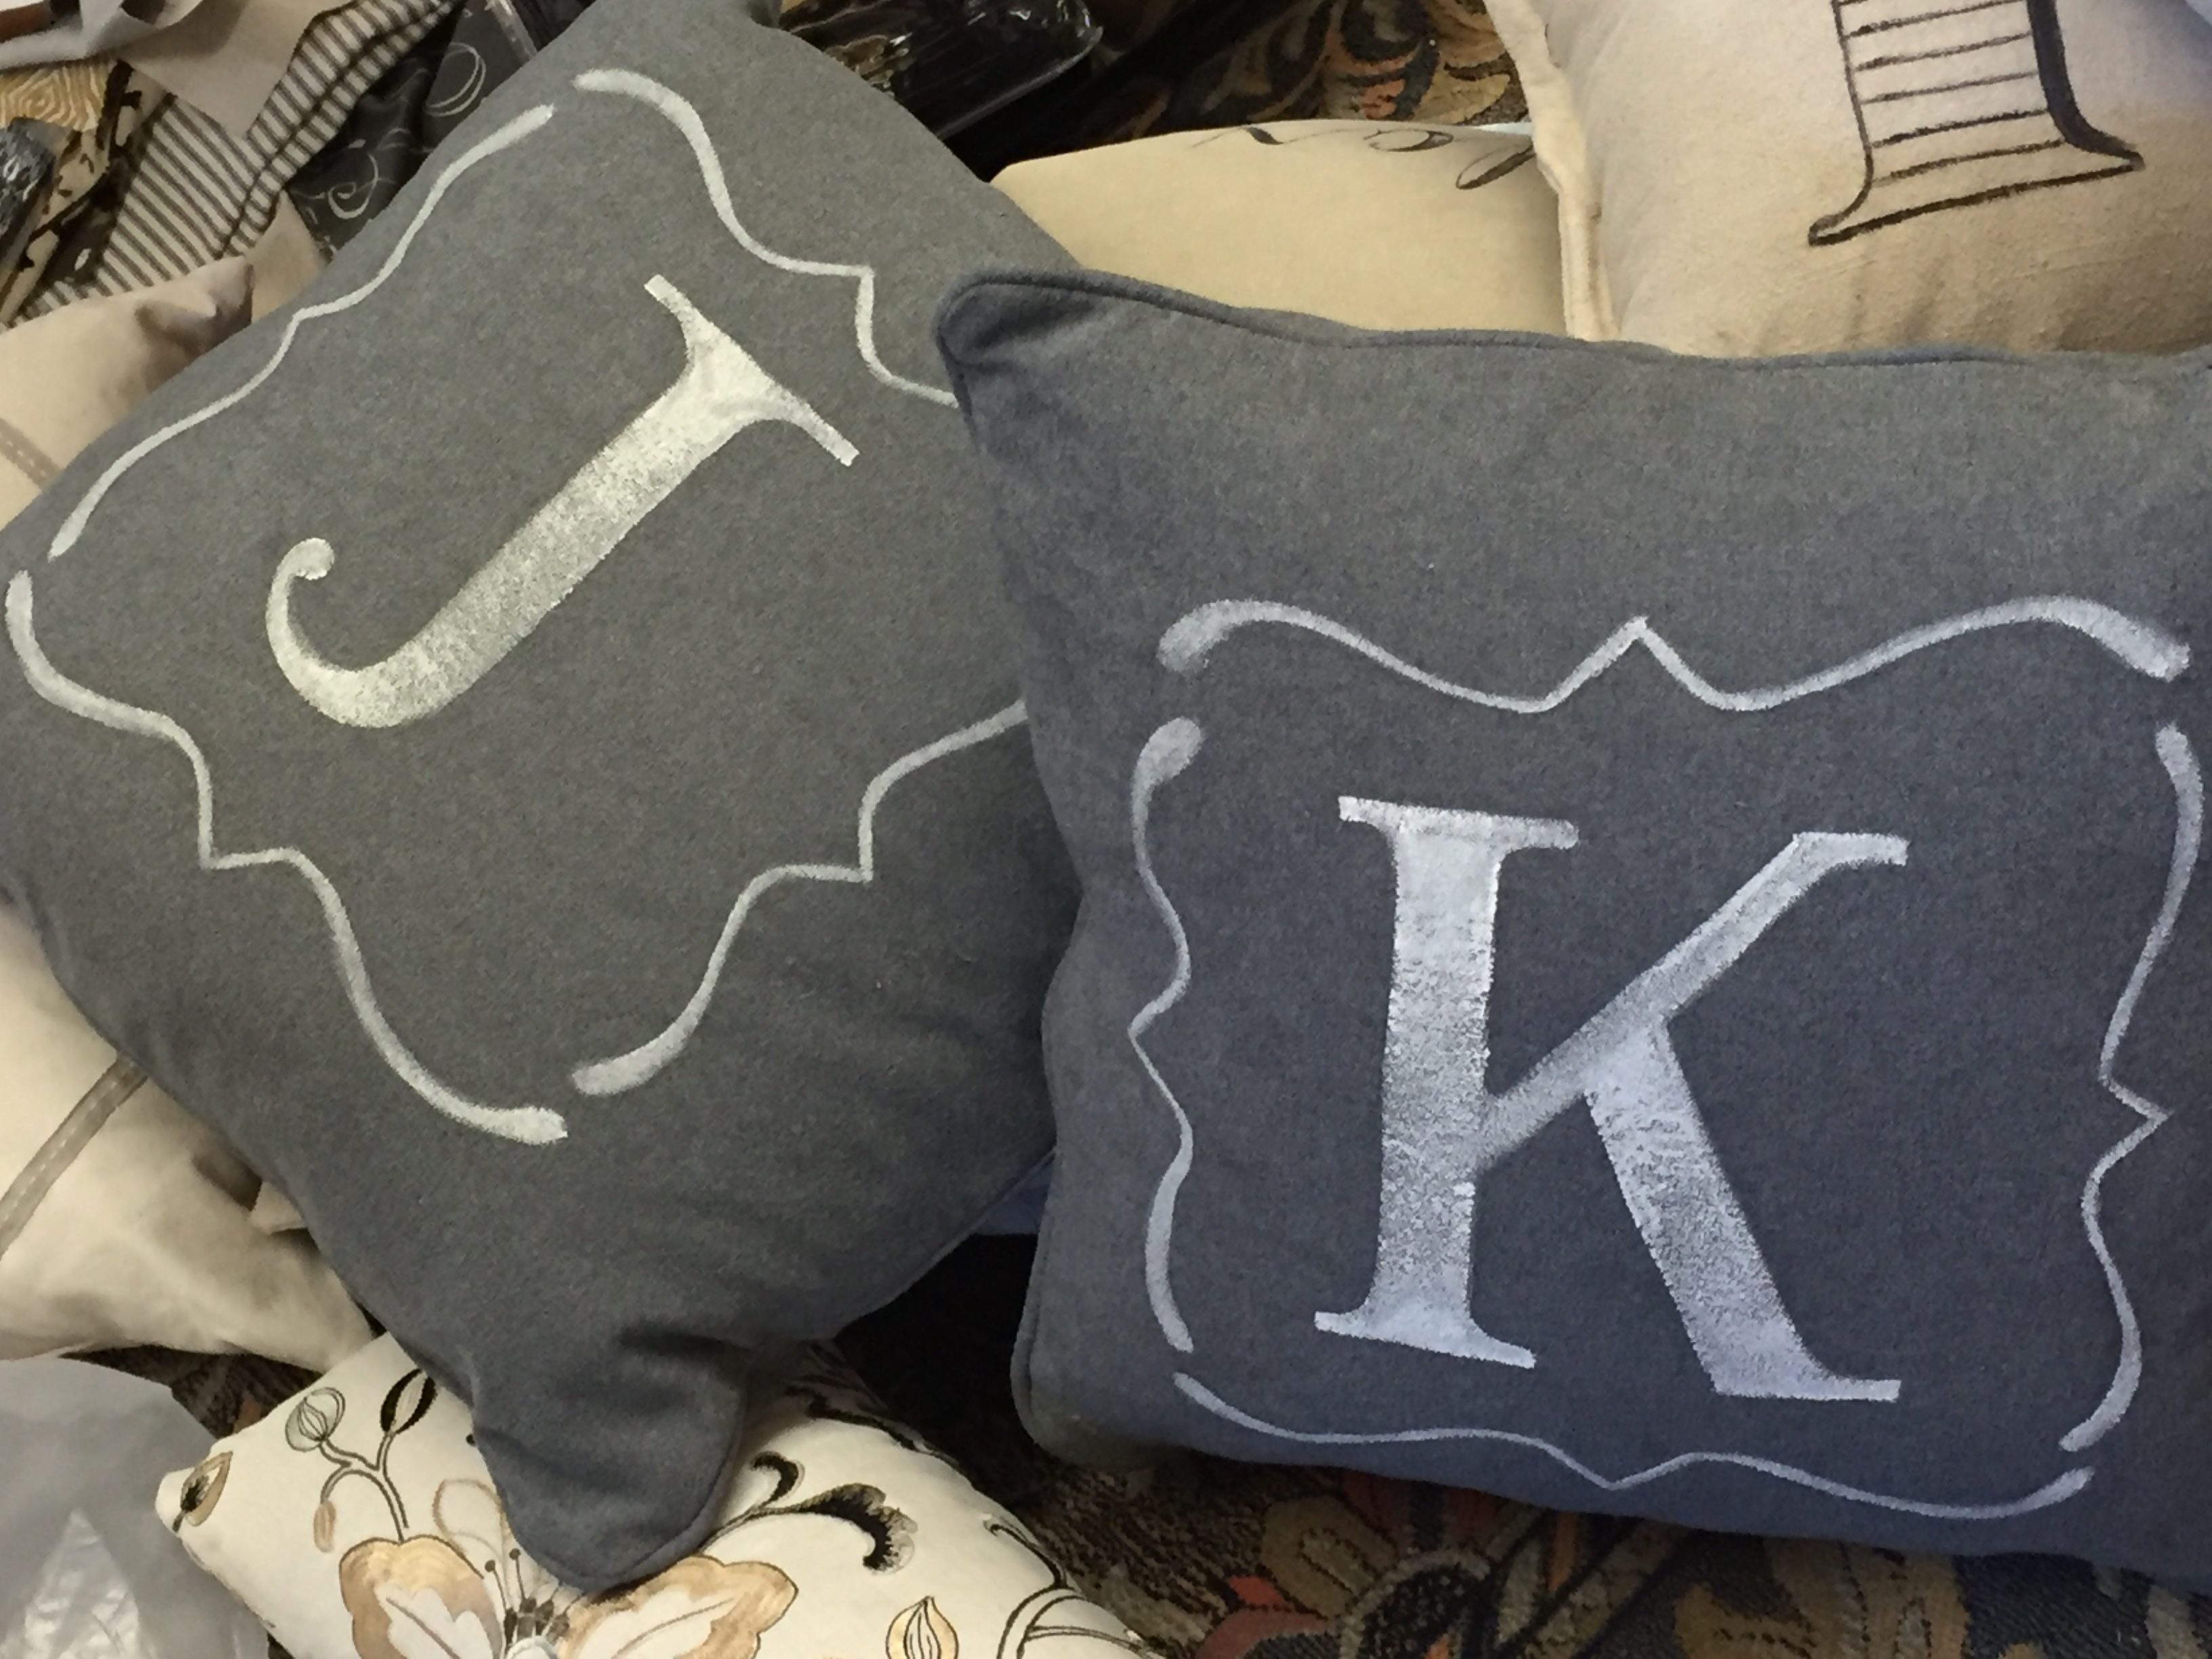 J And K Initial Throw Pillows